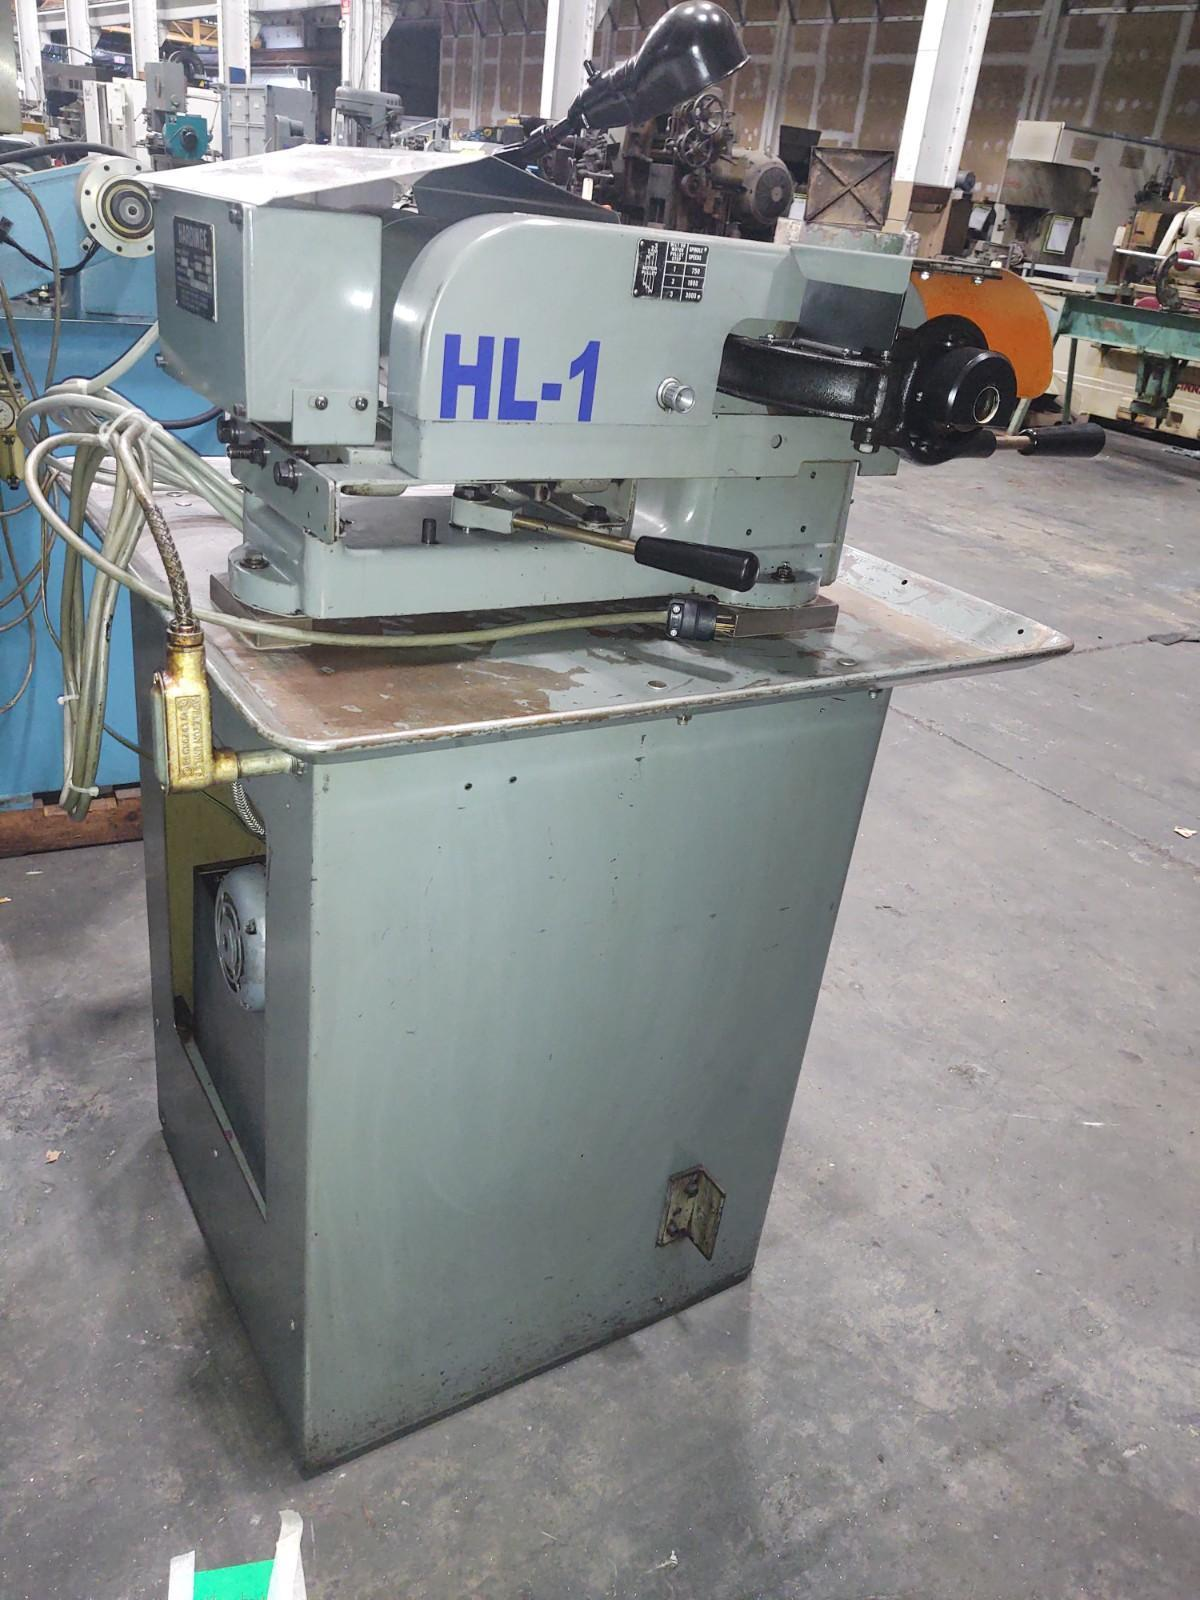 Hardinge Speed Lathe Model HSL-59